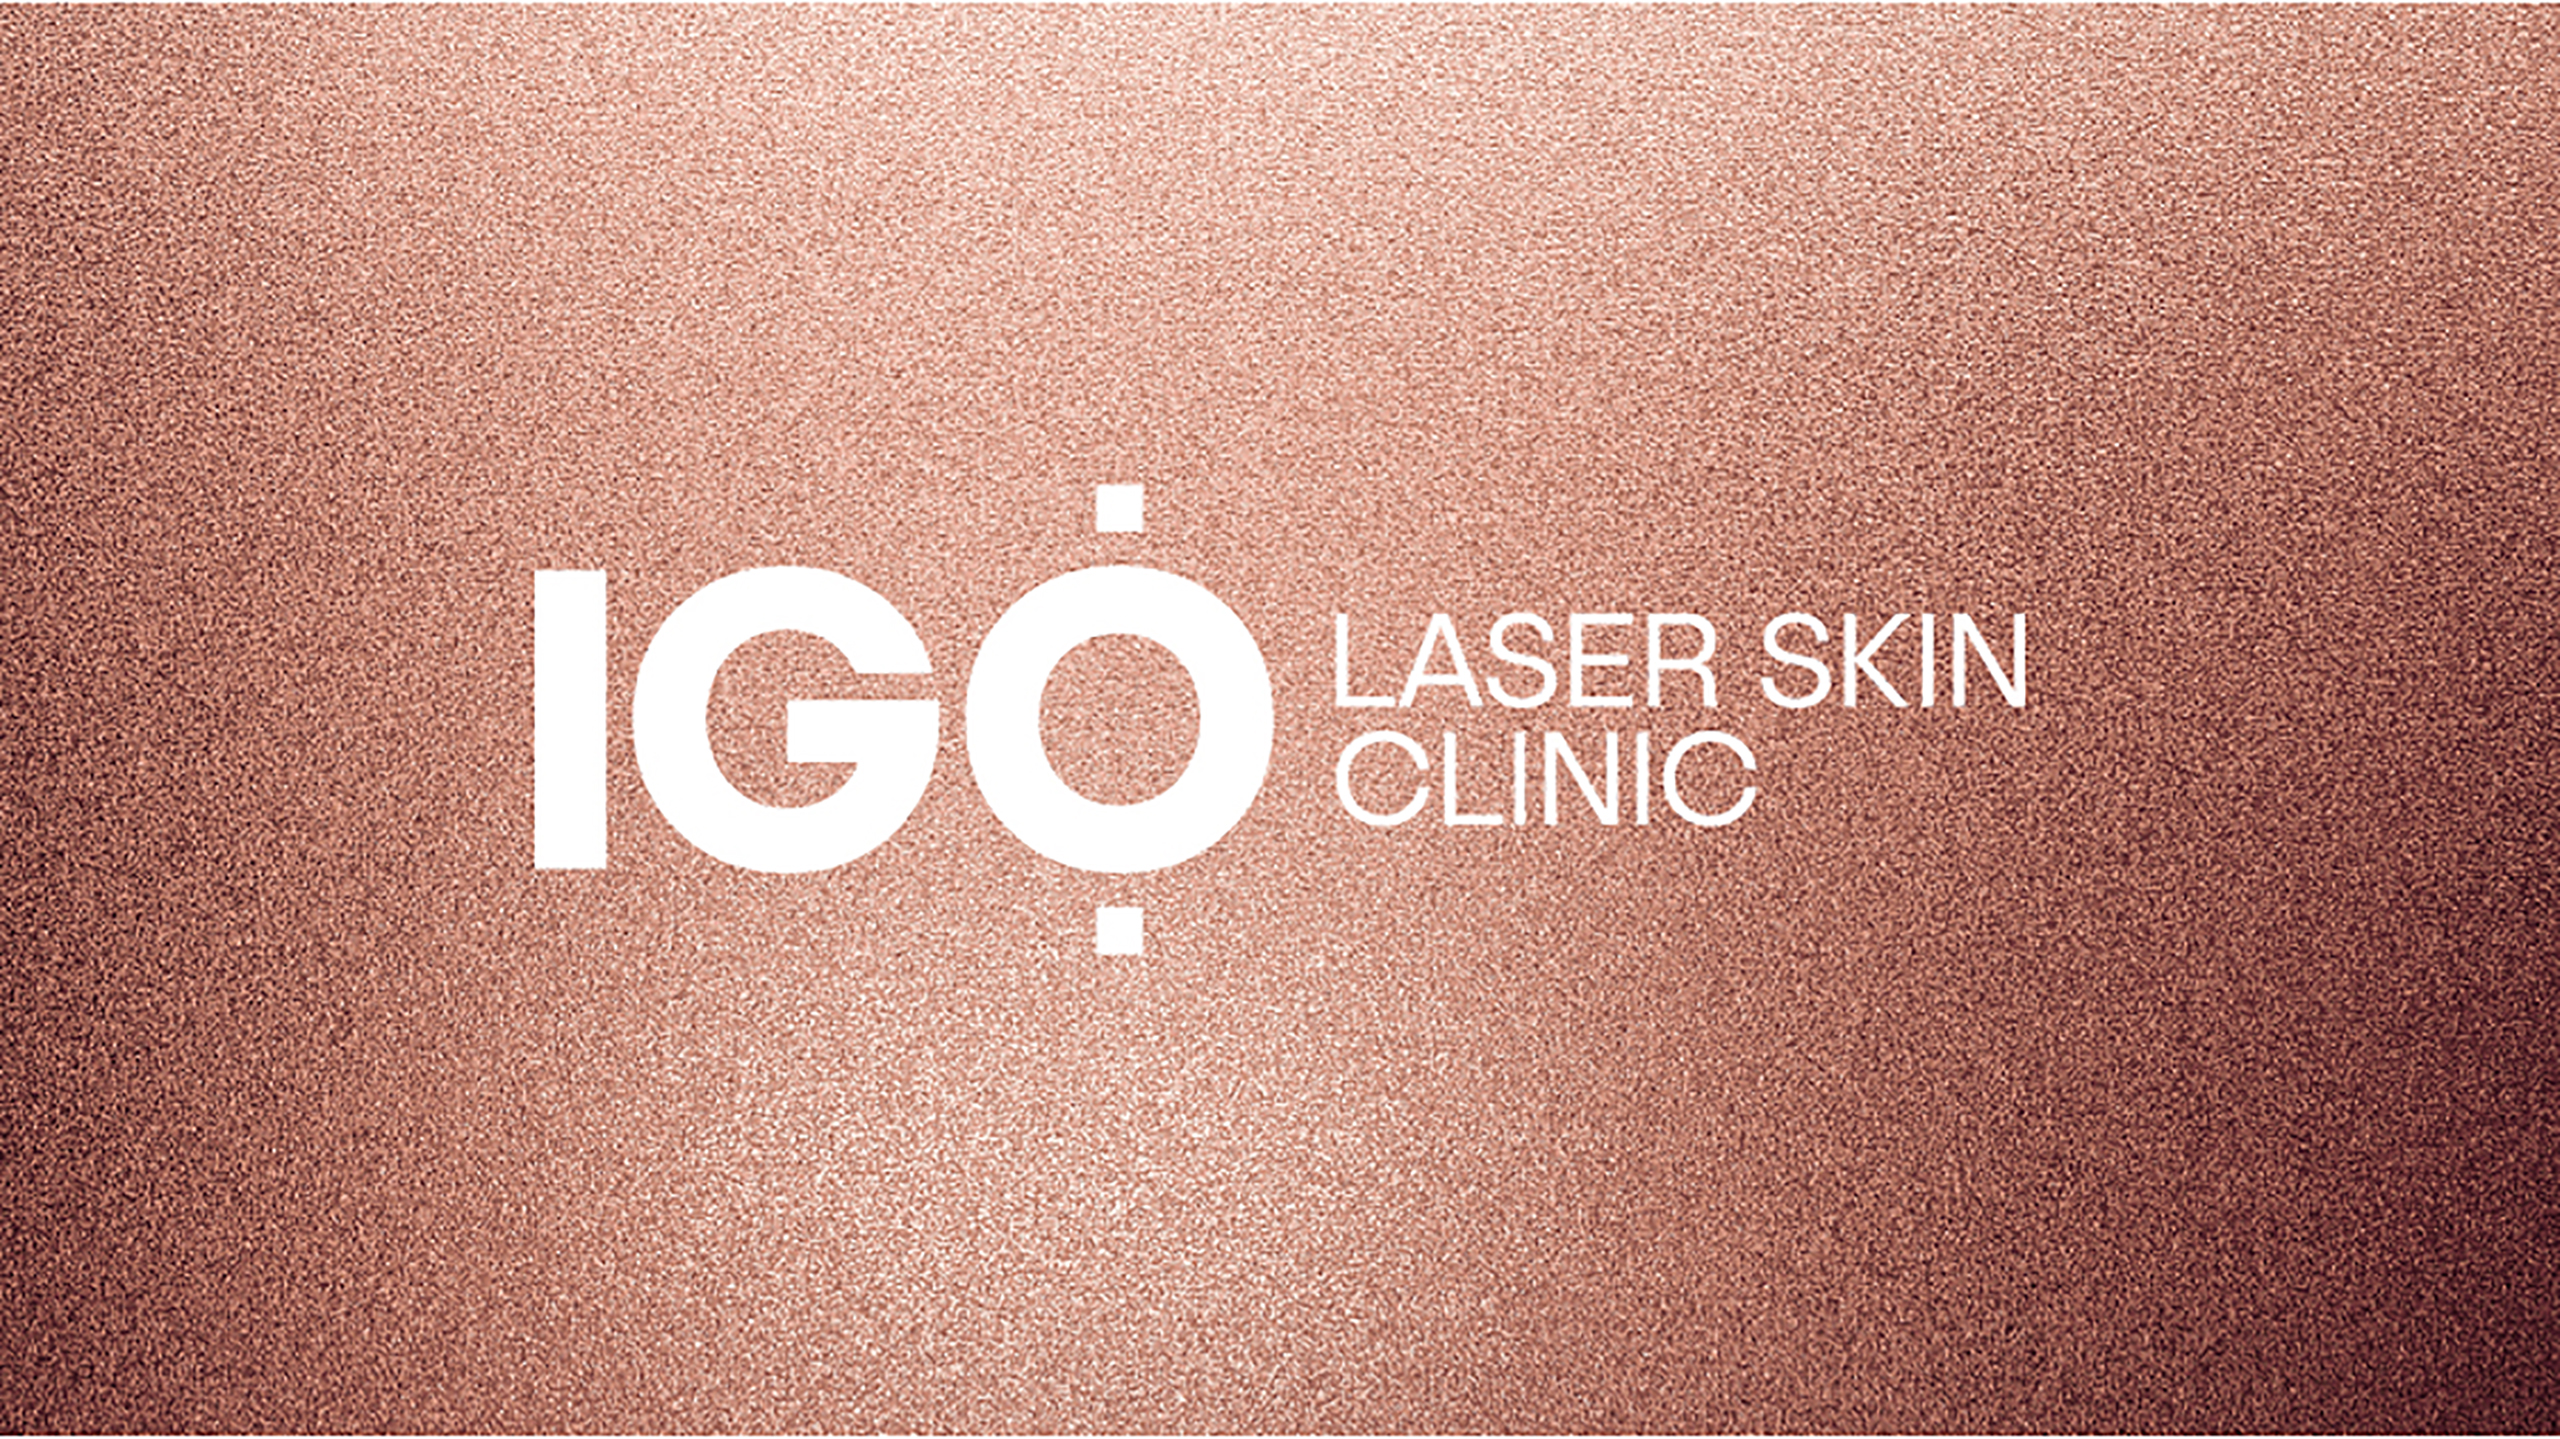 Brand identity and website for IGO Laser Skin Clinic created and designed by Vatra Agency